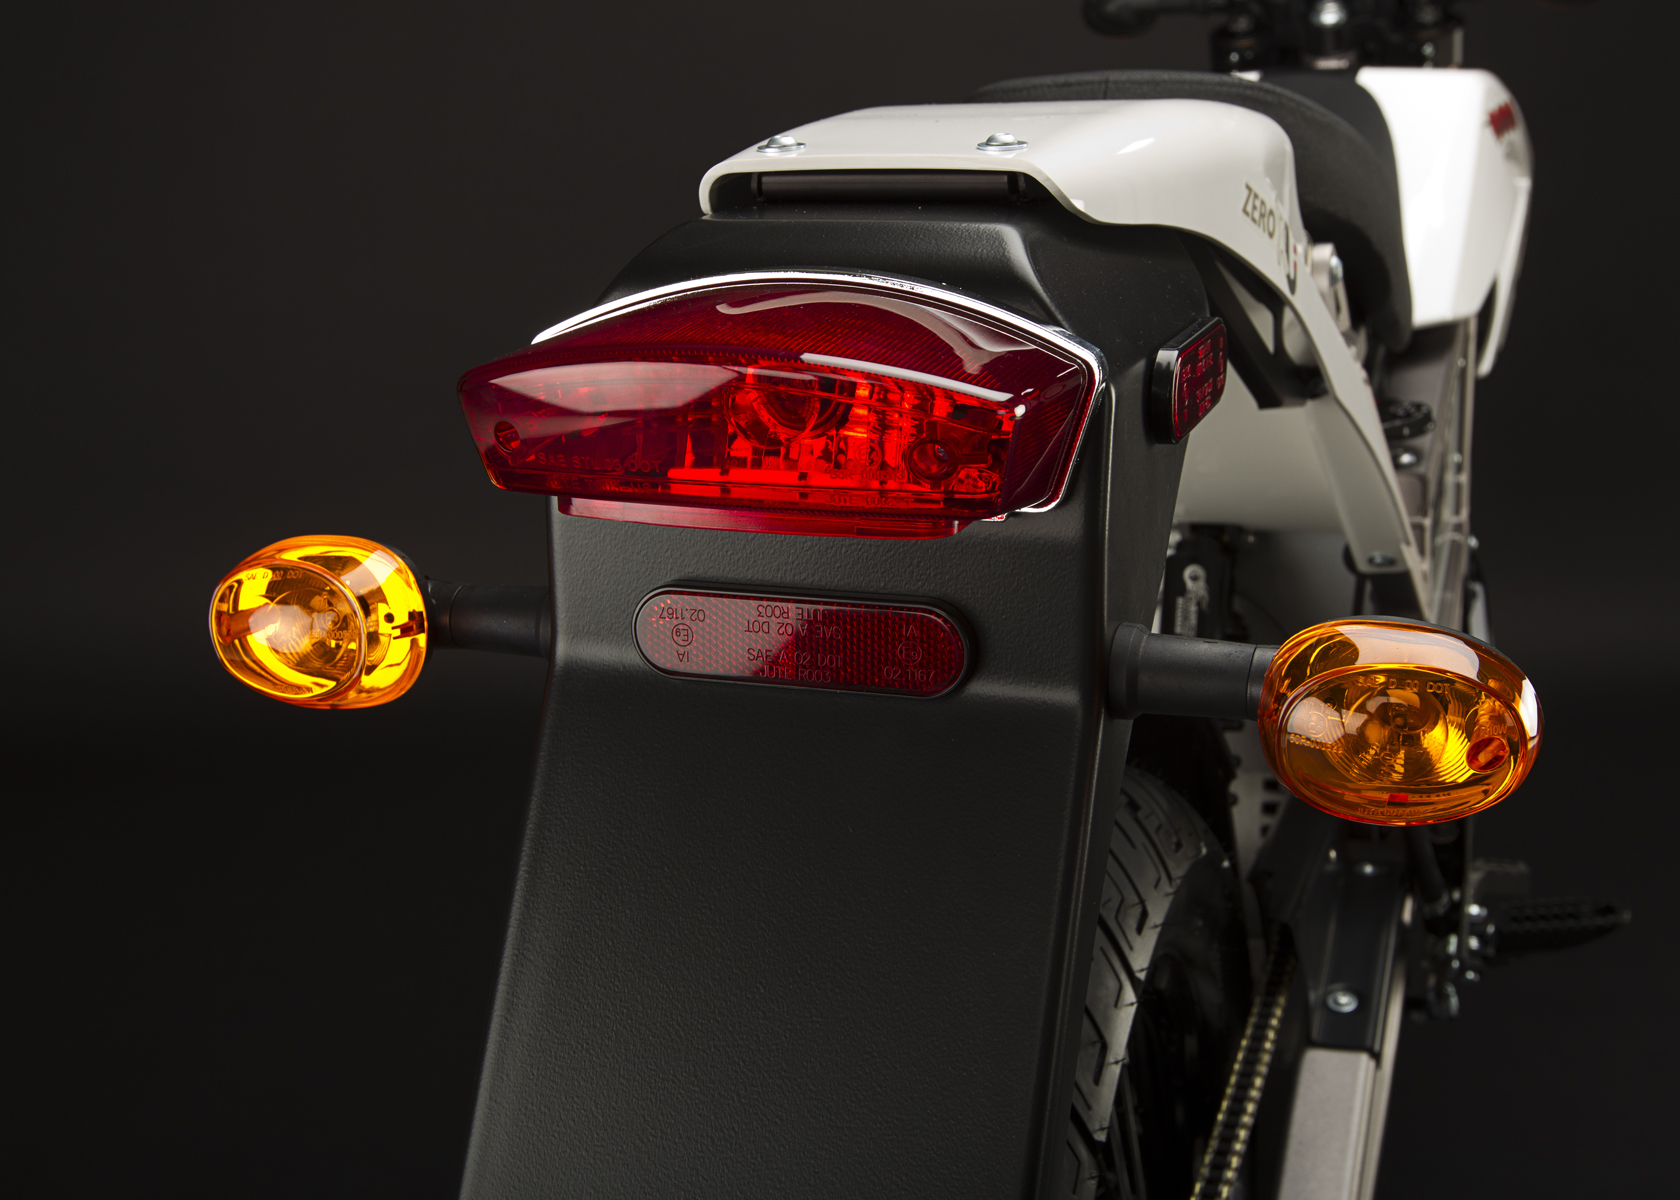 2011 Zero XU Electric Motorcycle: Tail Lights